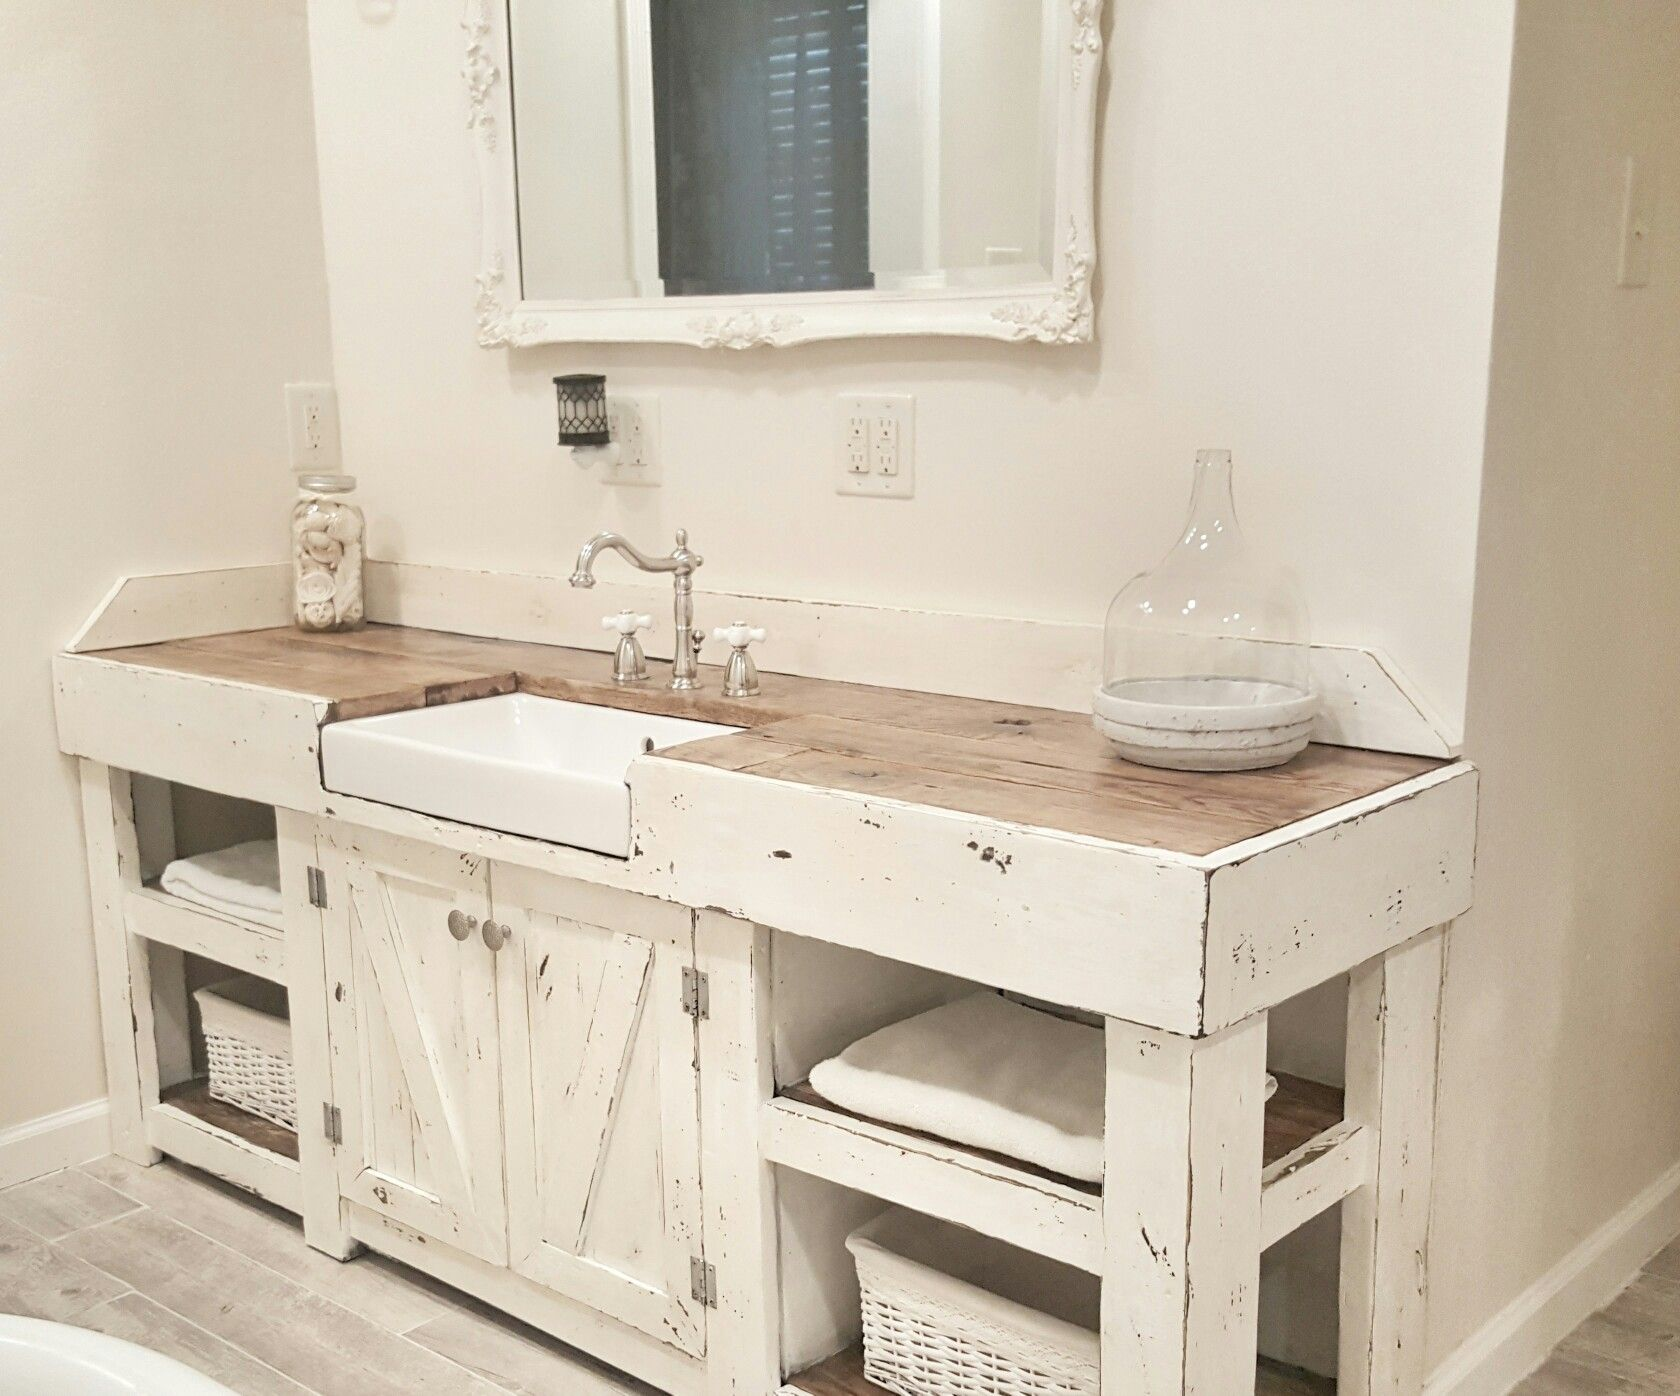 Cottage Bathroom Farmhouse Bathroom Farmhouse Vanity Farmhouse Sink Master Bath Pinterest